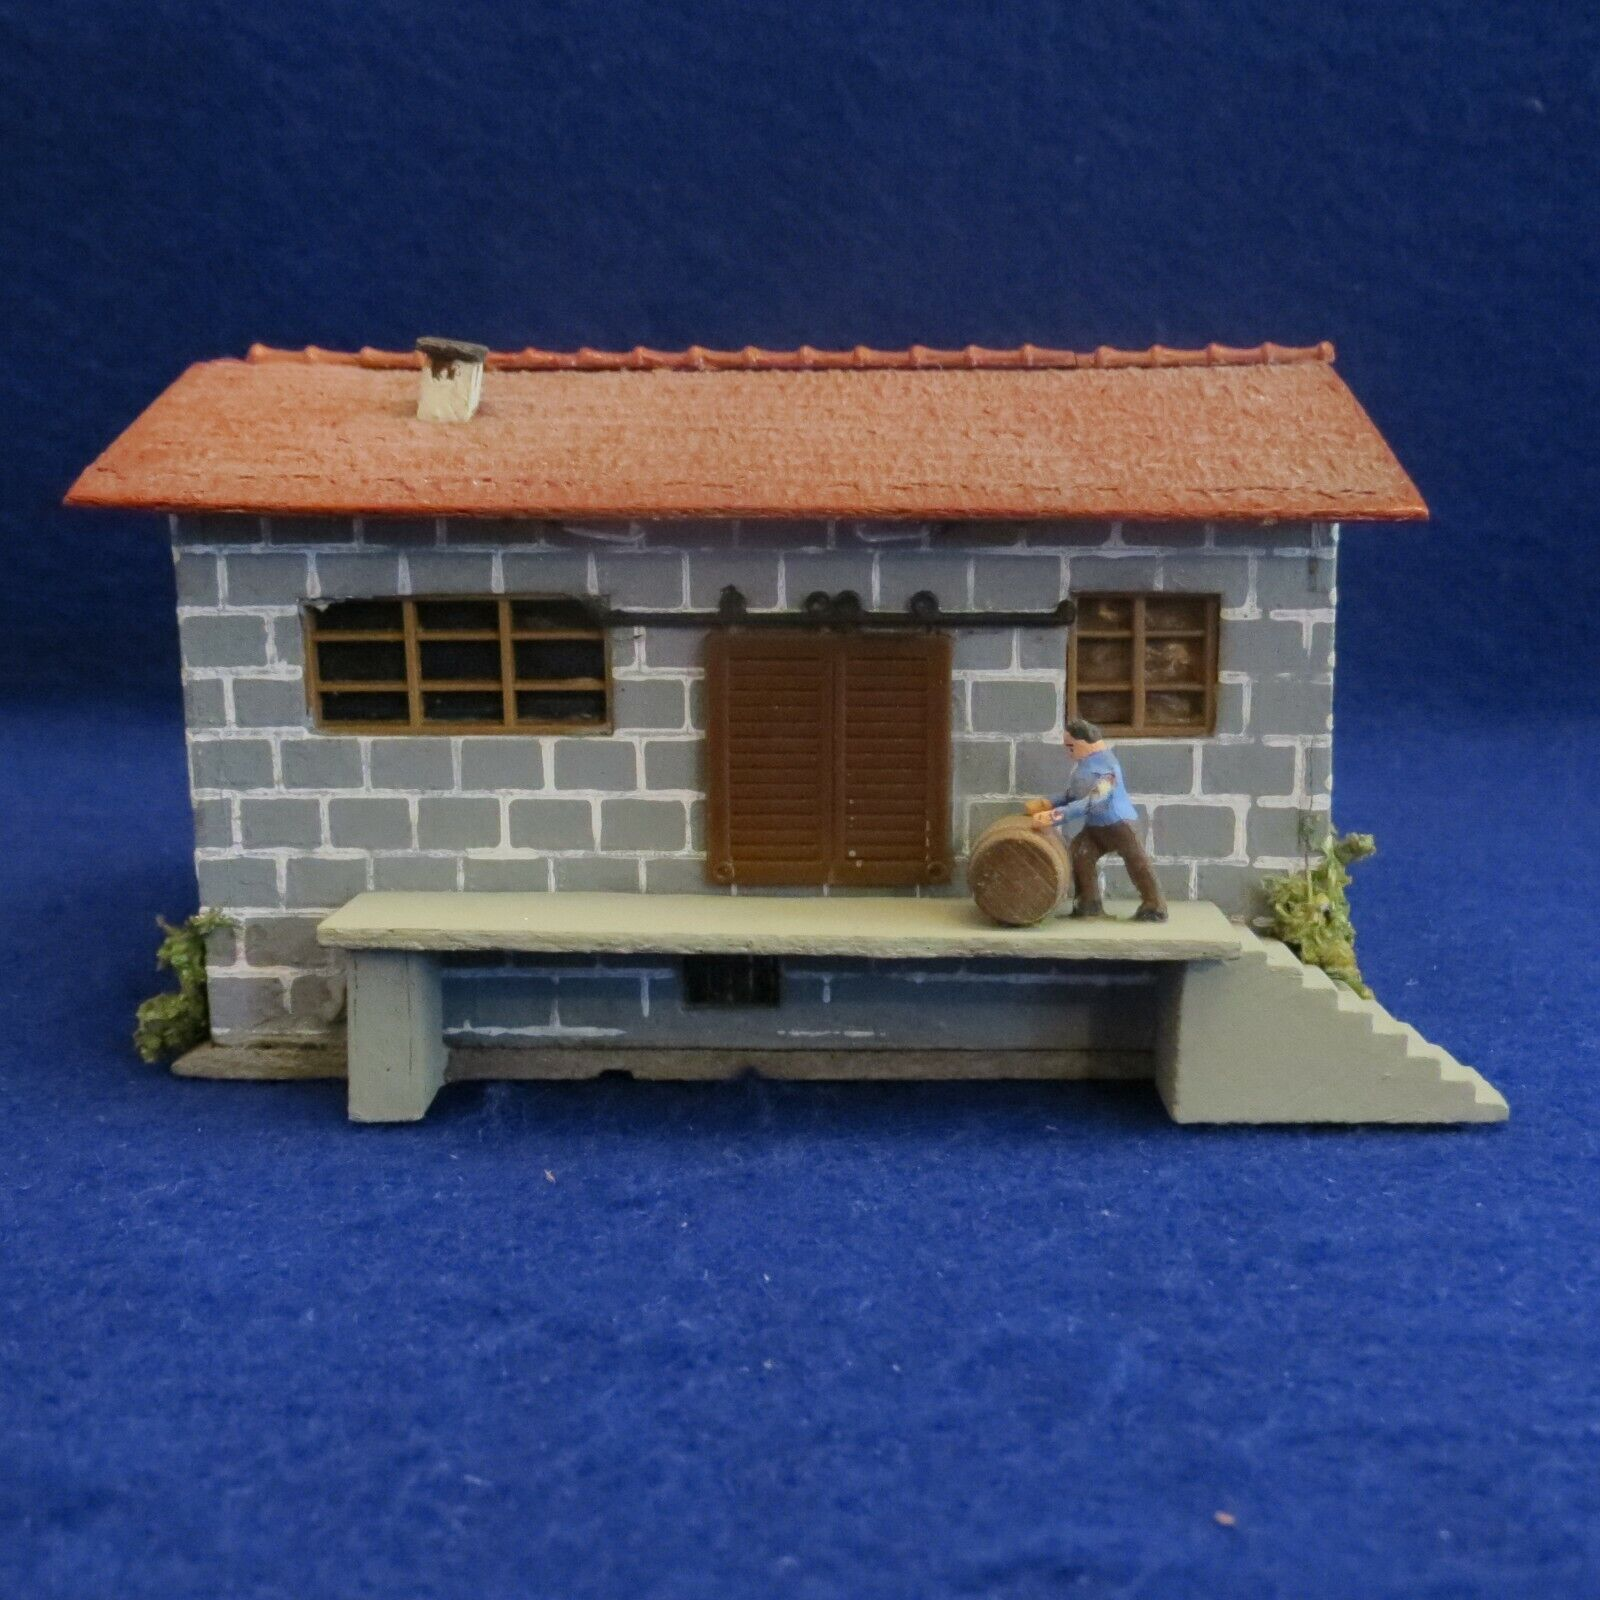 Vintage Faller HO 00 No. 155 Composition Stucco Freight Depot Terminal EXC COND